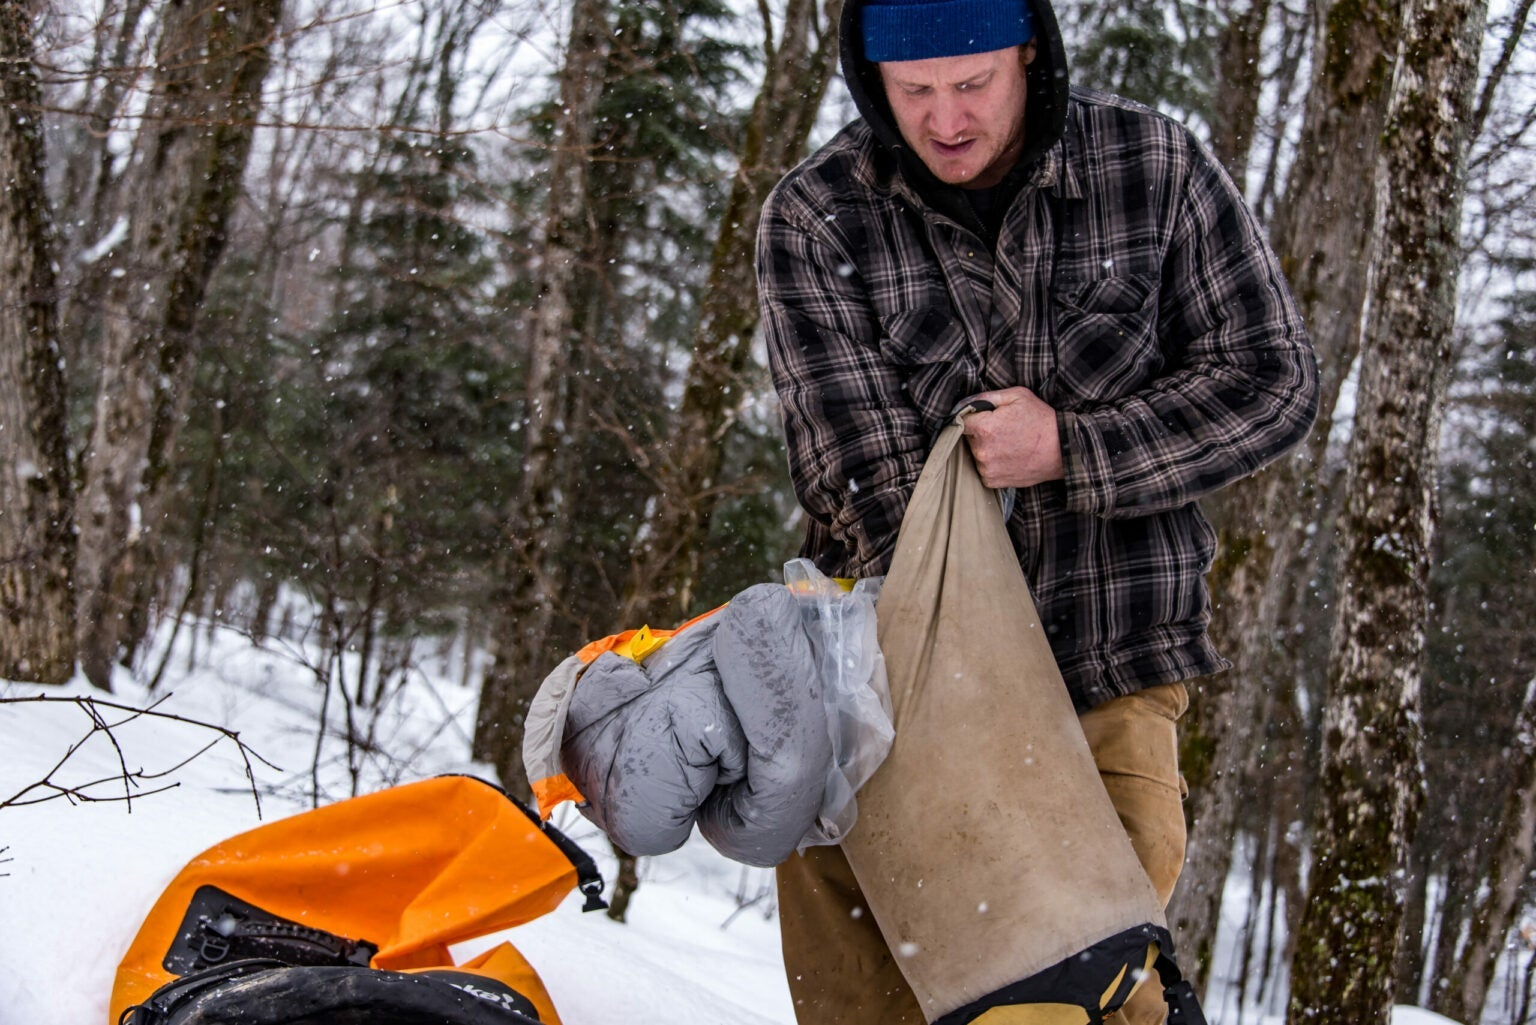 Person stuffing a sleeping bag and plastic bag in a compression bag in the snow